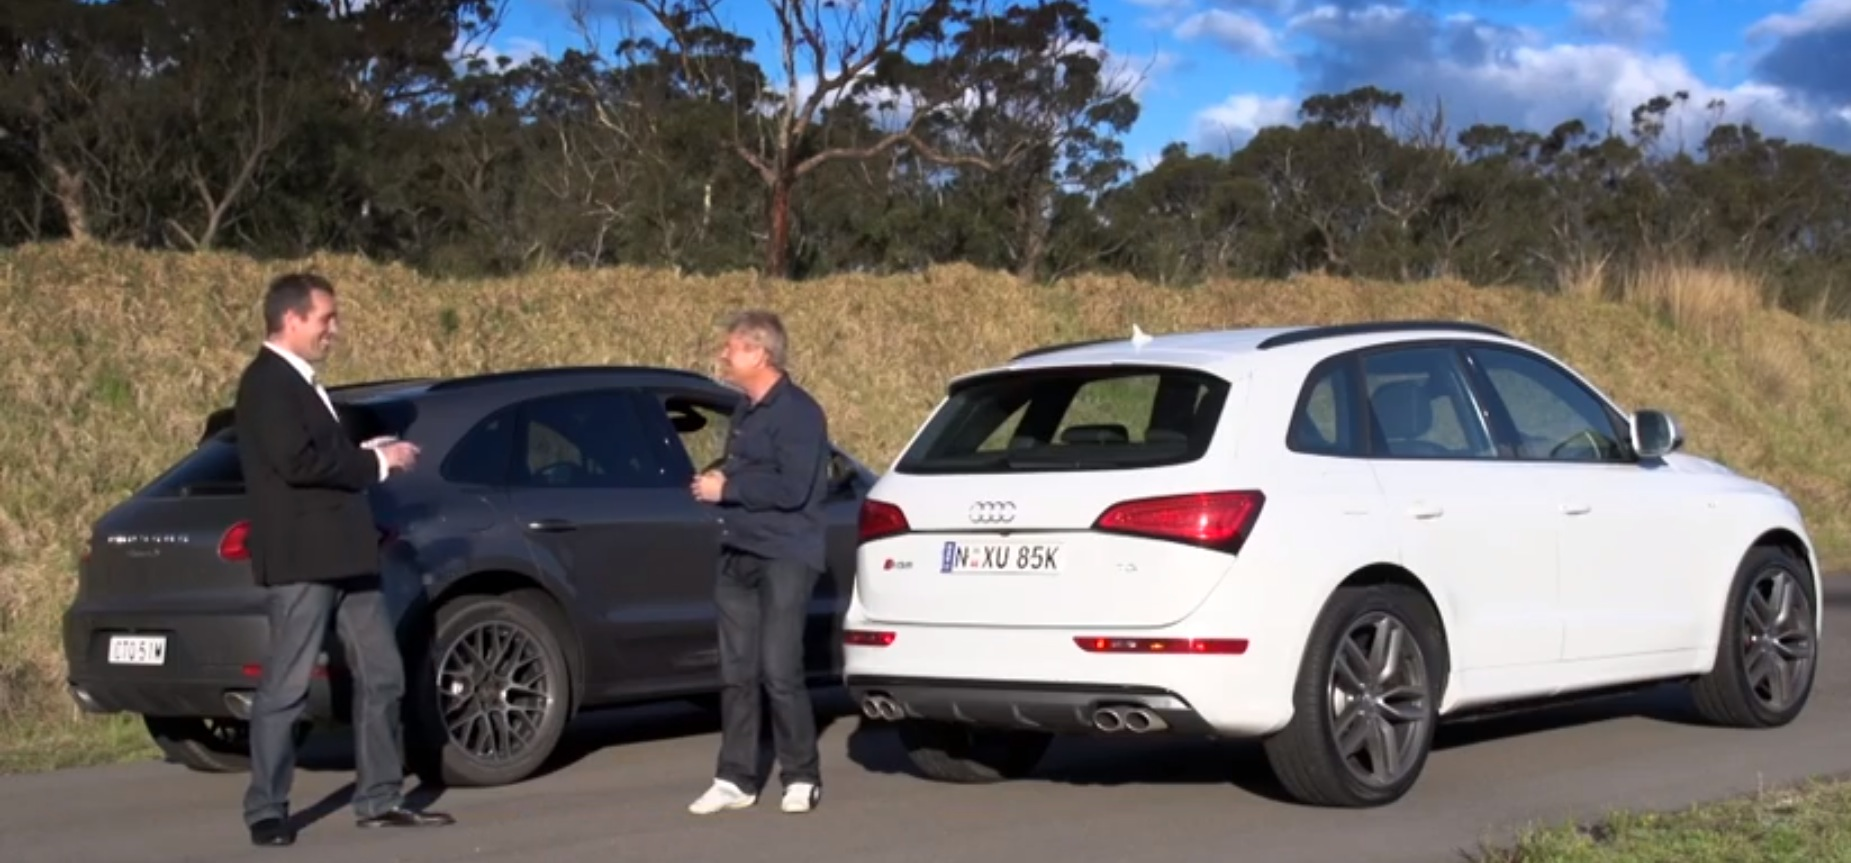 Audi Sq5 Tdi Proves Faster Than Macan S Diesel In Drag